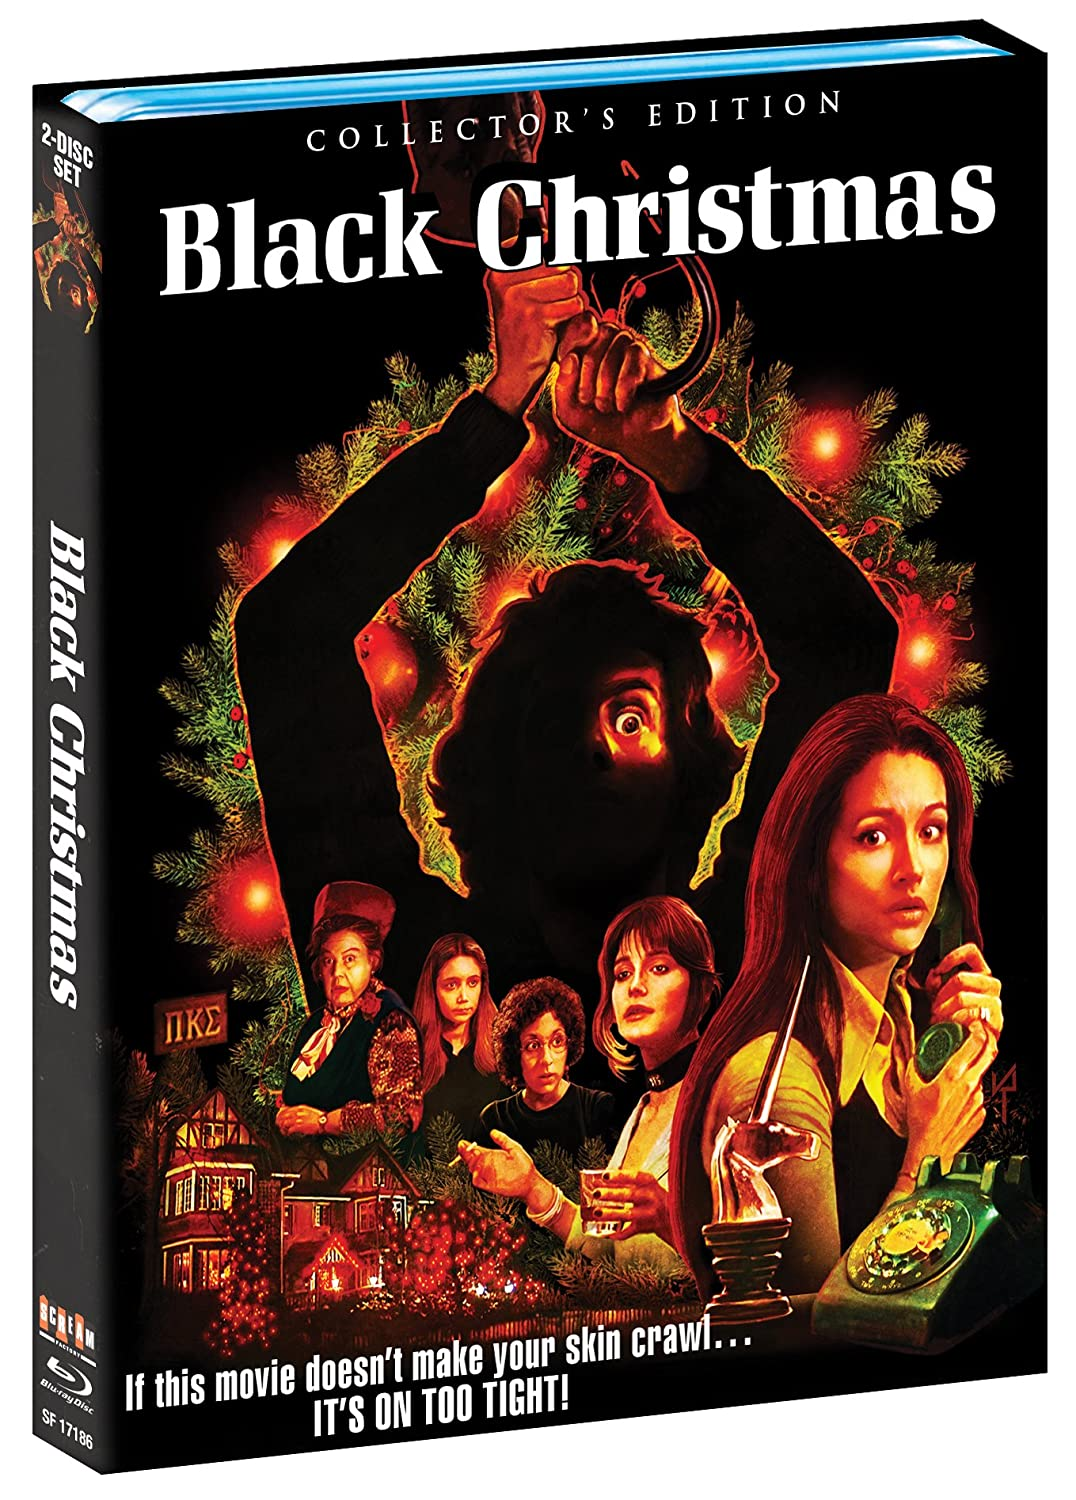 amazoncom black christmas collectors edition blu ray margot kidder john saxon keir dullea bob clark movies tv - Black Christmas Movie